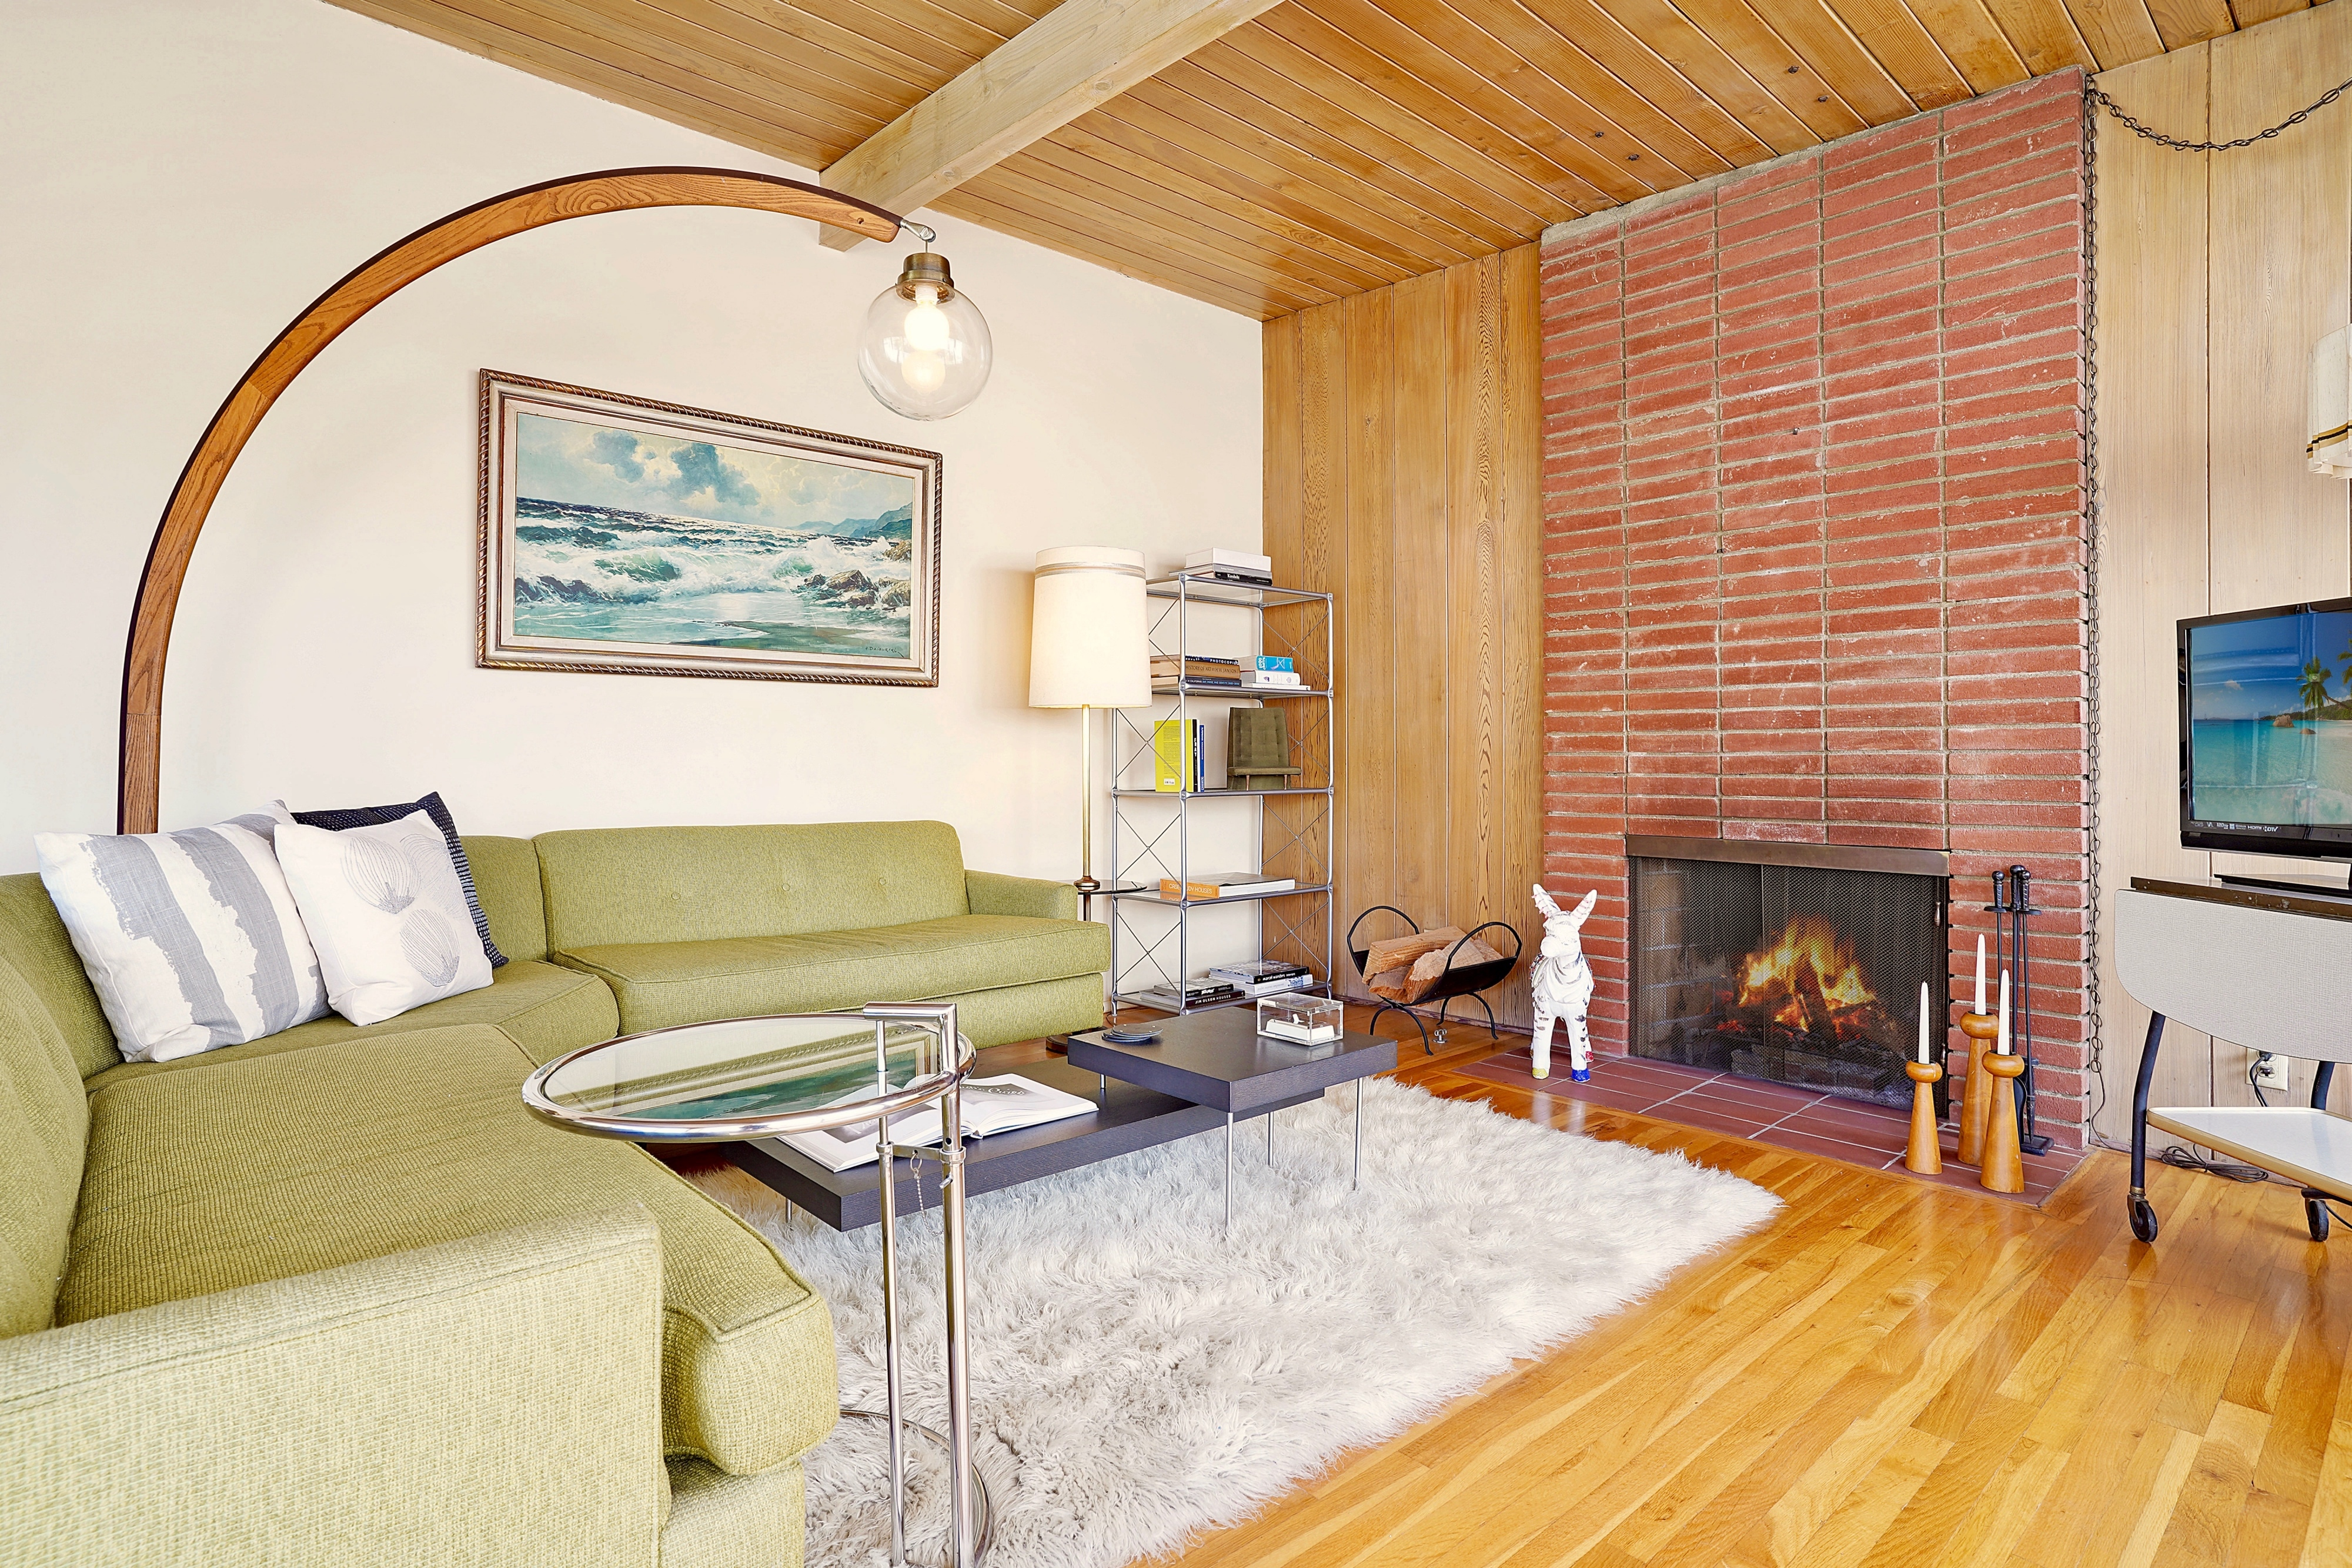 Living room with light wood floors and full-height brick fireplace.